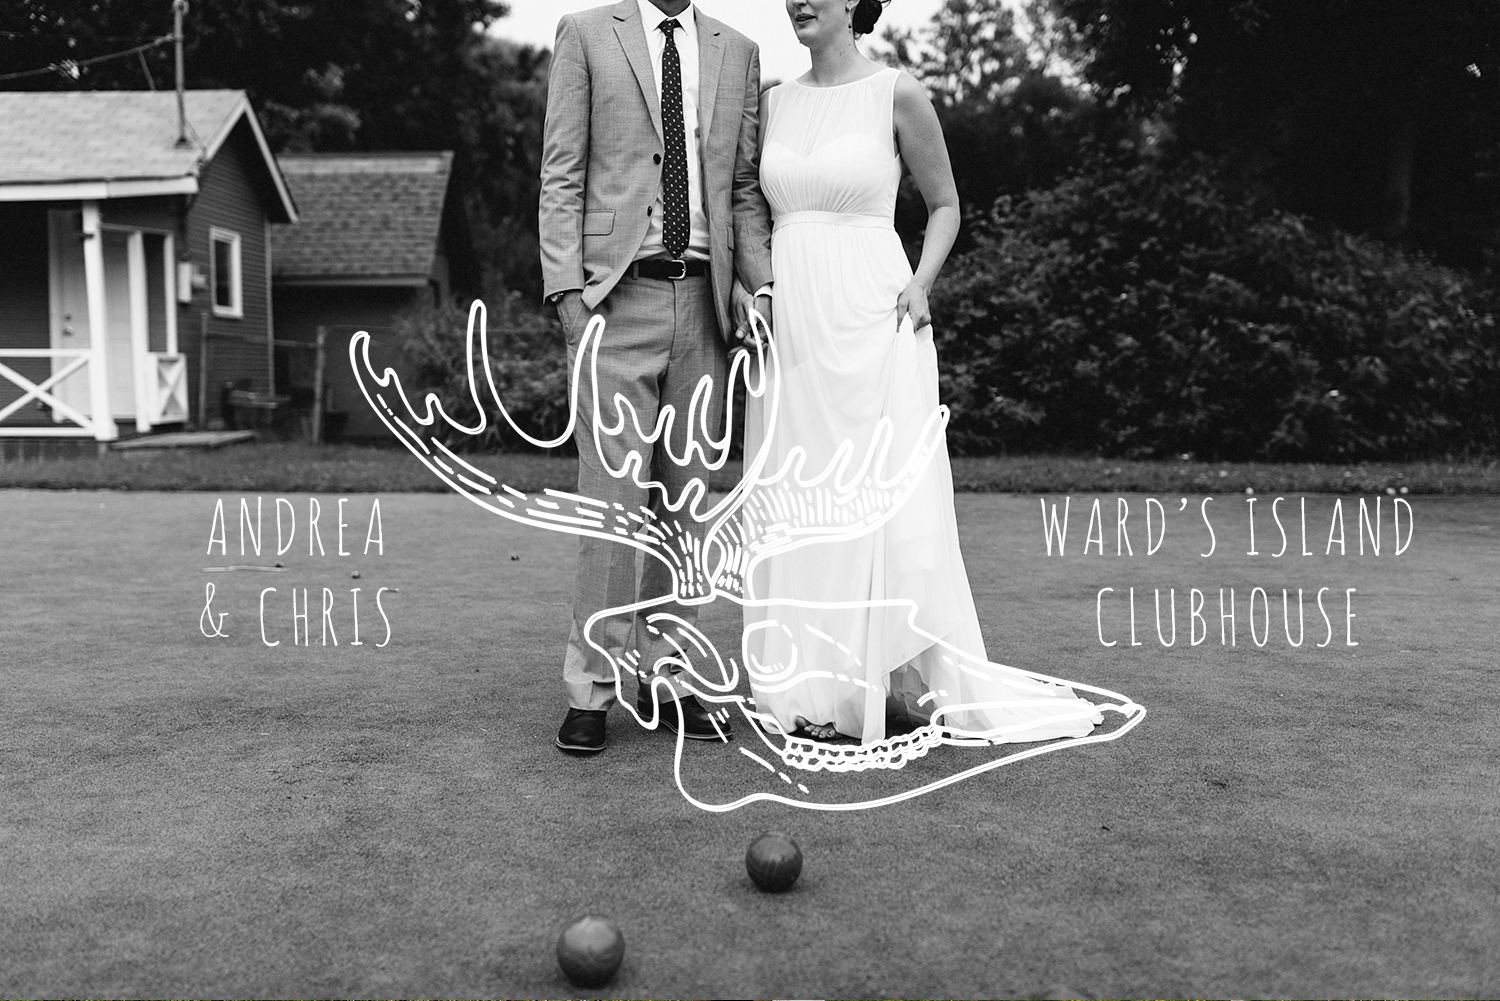 TITLE-INNER-3-Best-Film-Wedding-Photographers-3b-photography-analog-photography-wards-island-clubhouse-green-wedding-shoes-vintage-venue-bride-and-groom-photos-intimate-photo-locations-in-nature-trees-greenery-houses-together.jpg